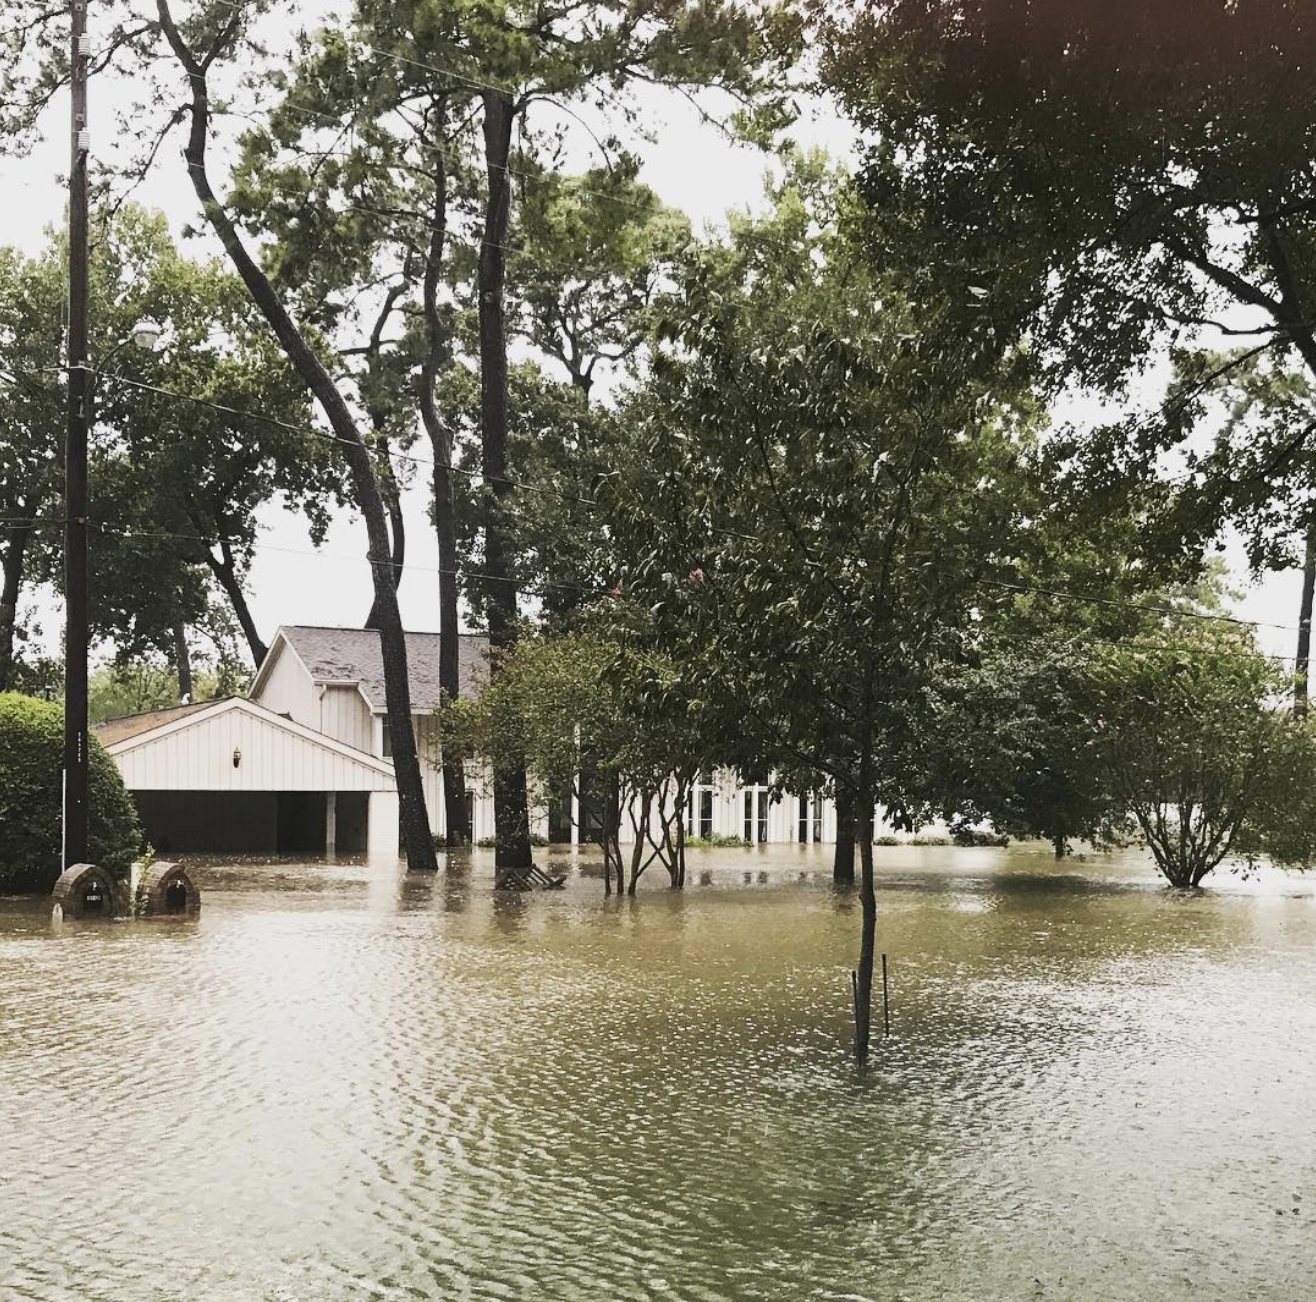 Our house after the flooding from Hurricane Harvey